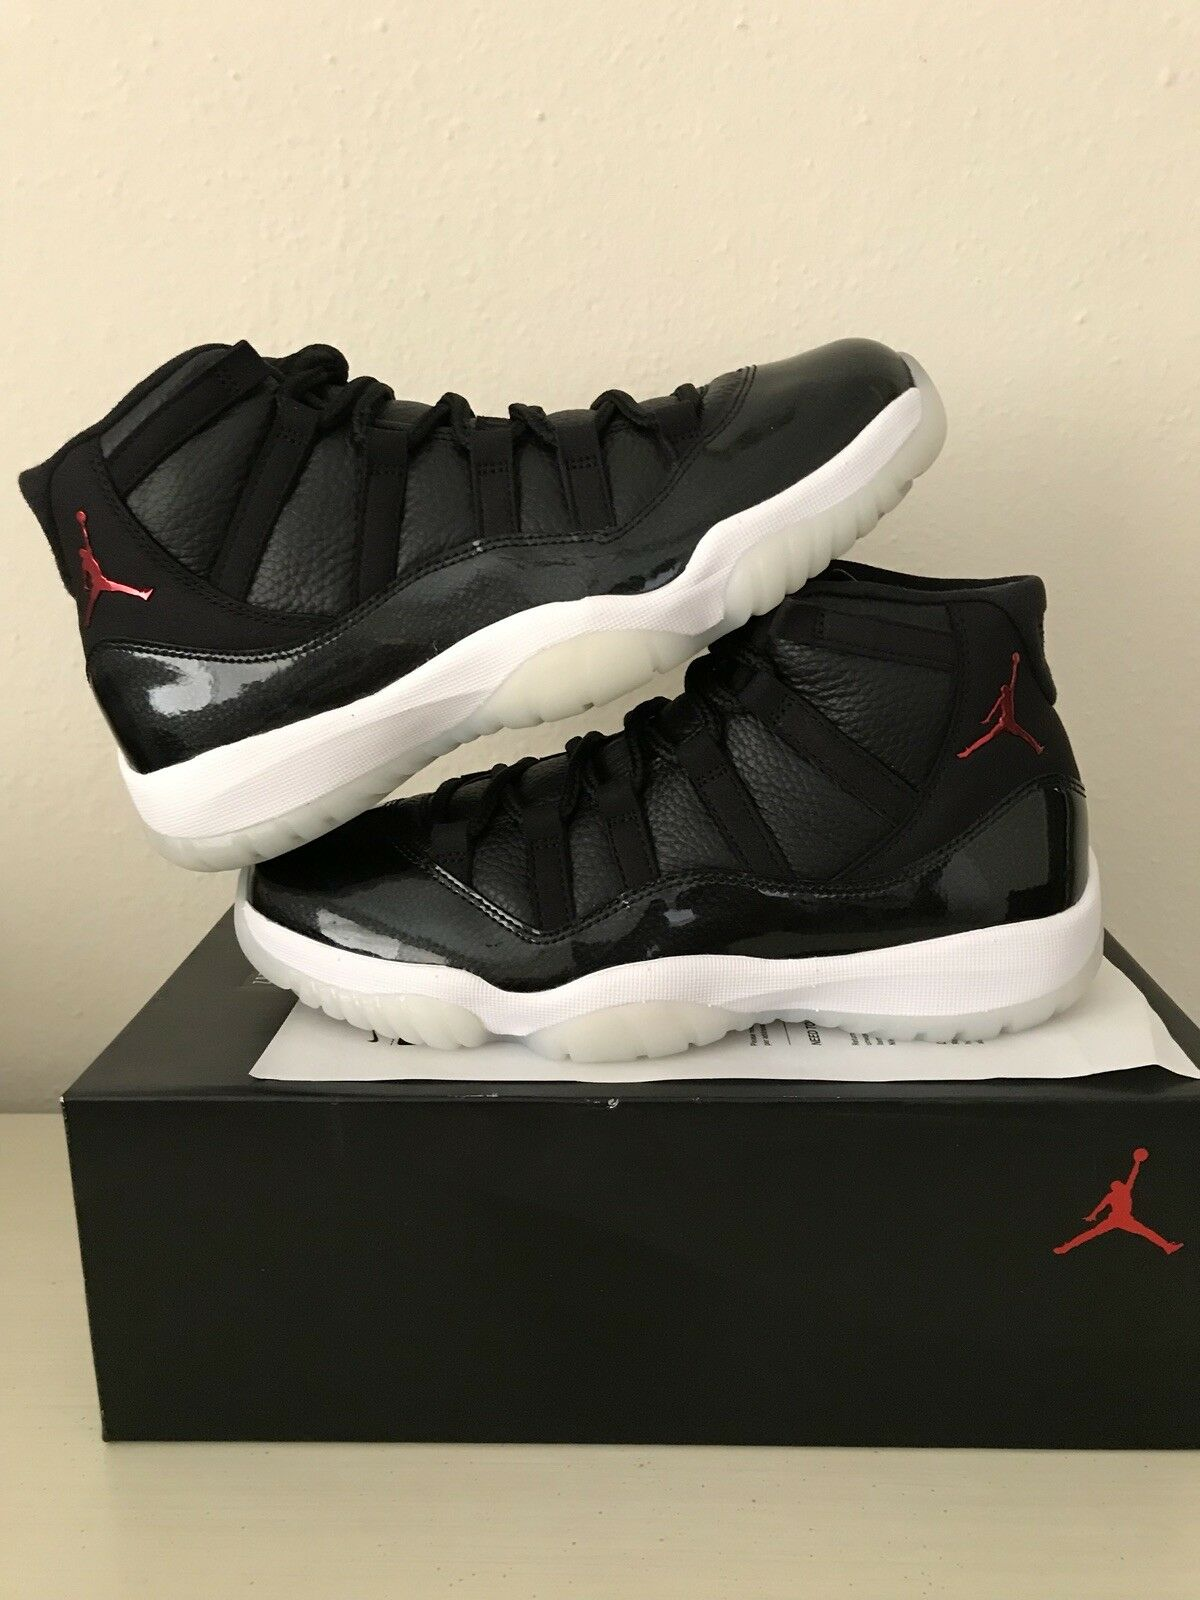 Air Jordan 11 Retro 72-10 Comfortable Cheap and beautiful fashion